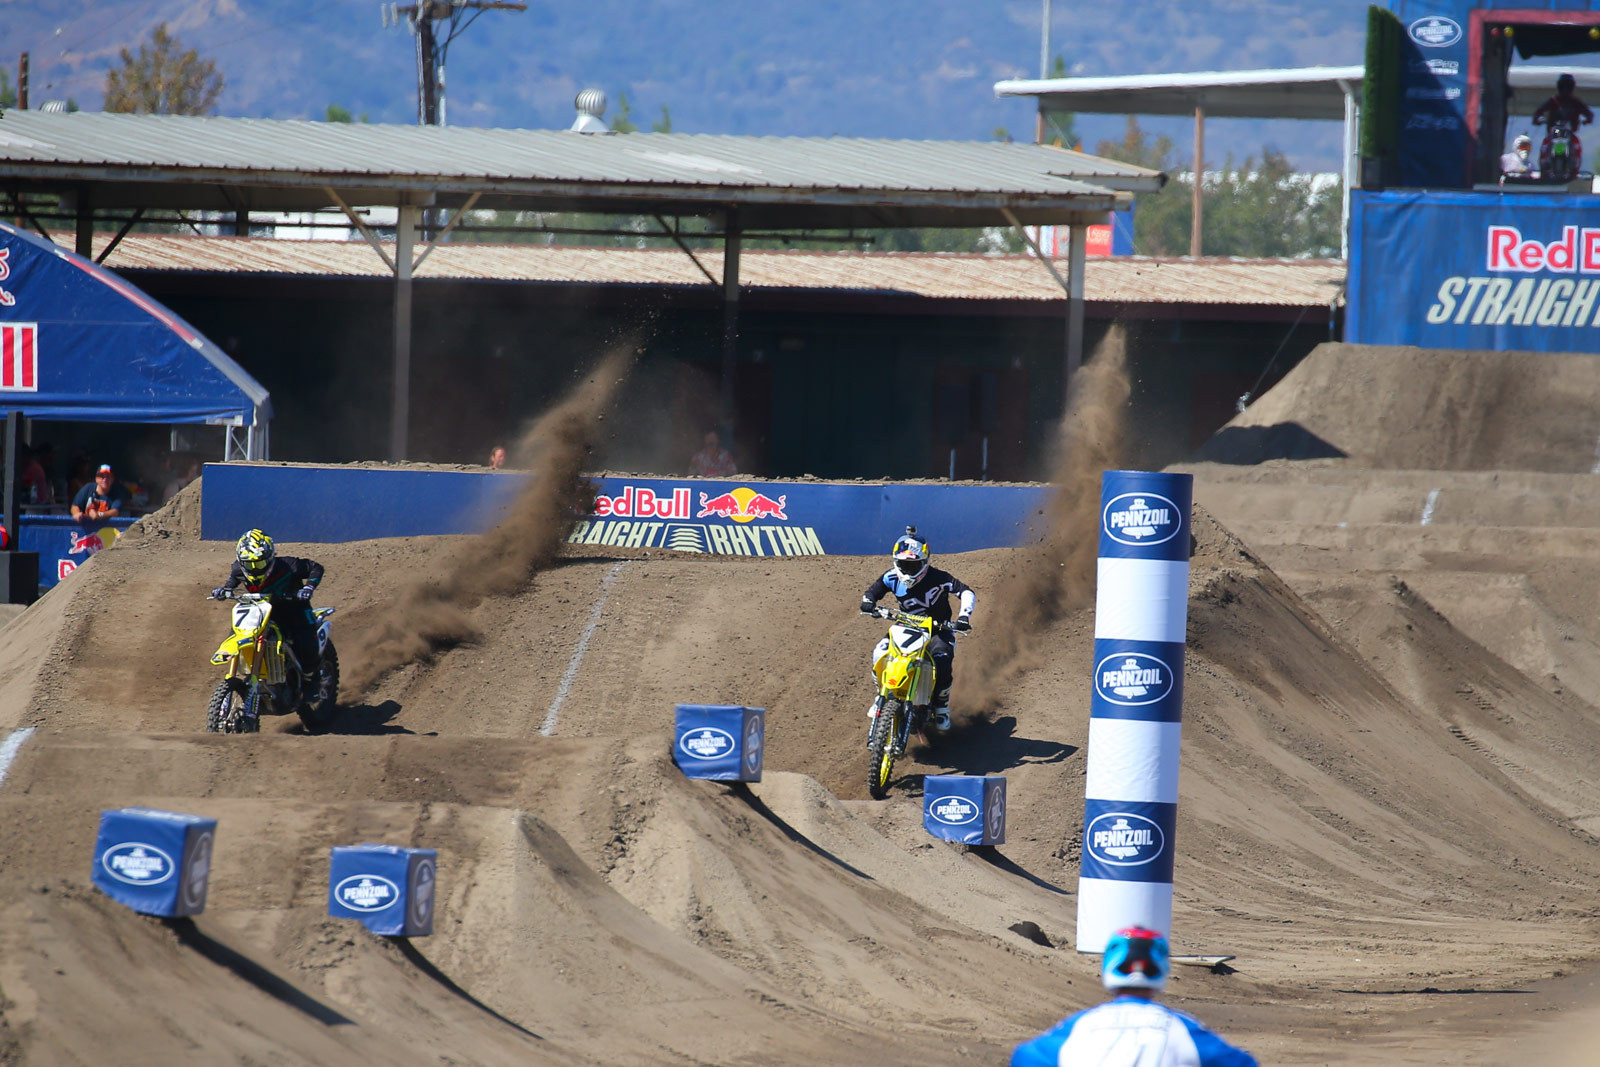 Nick Schmidt and James Stewart - Photo Blast: Red Bull Straight Rhythm - Motocross Pictures - Vital MX